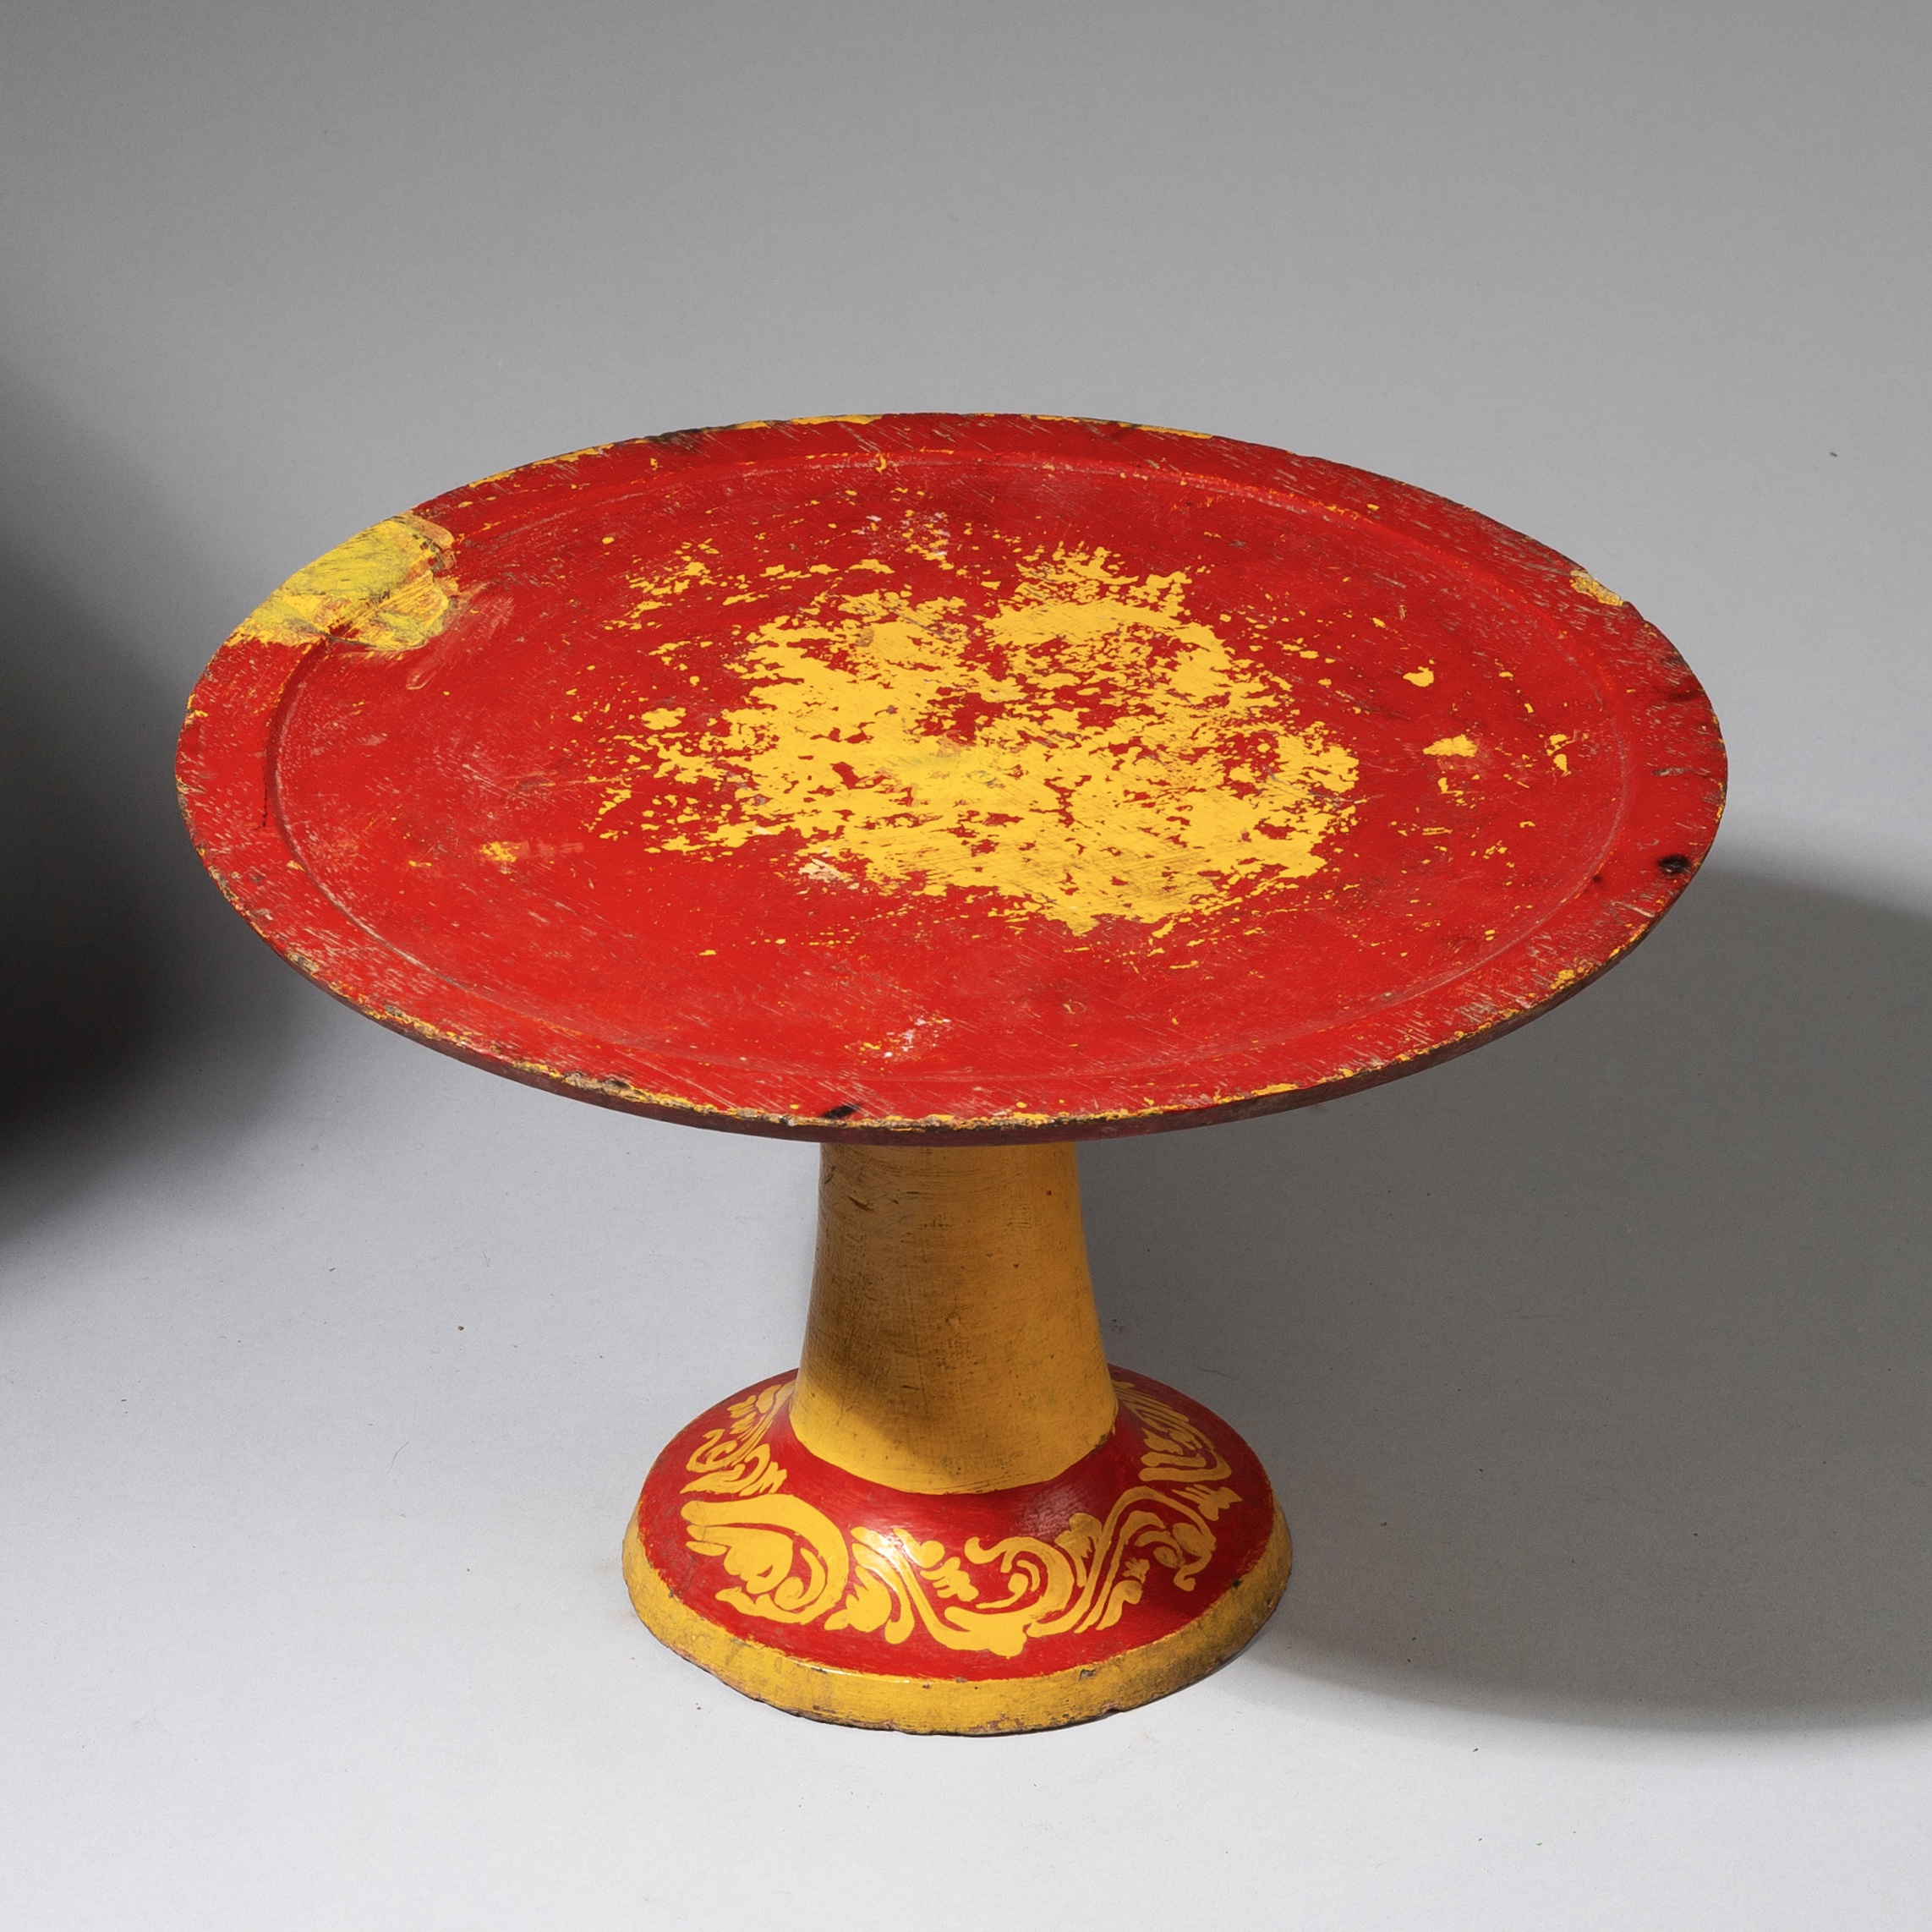 SD A REALLY STRIKING TABLE FROM INDONESIA ( No 3234 )